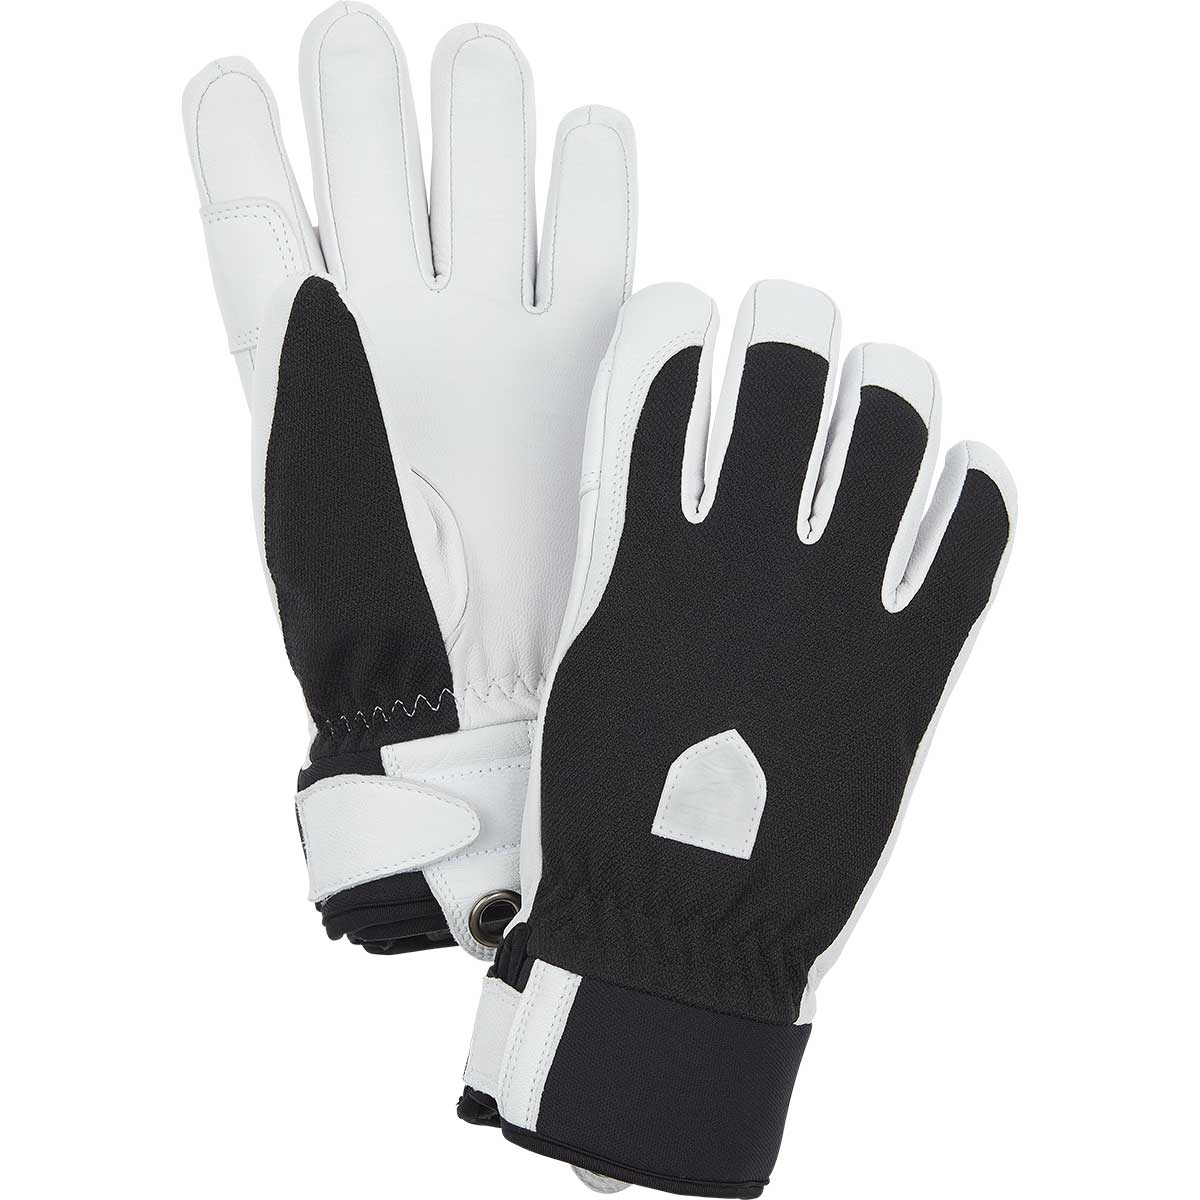 Hestra women's Patrol 5-Finger Glove in black